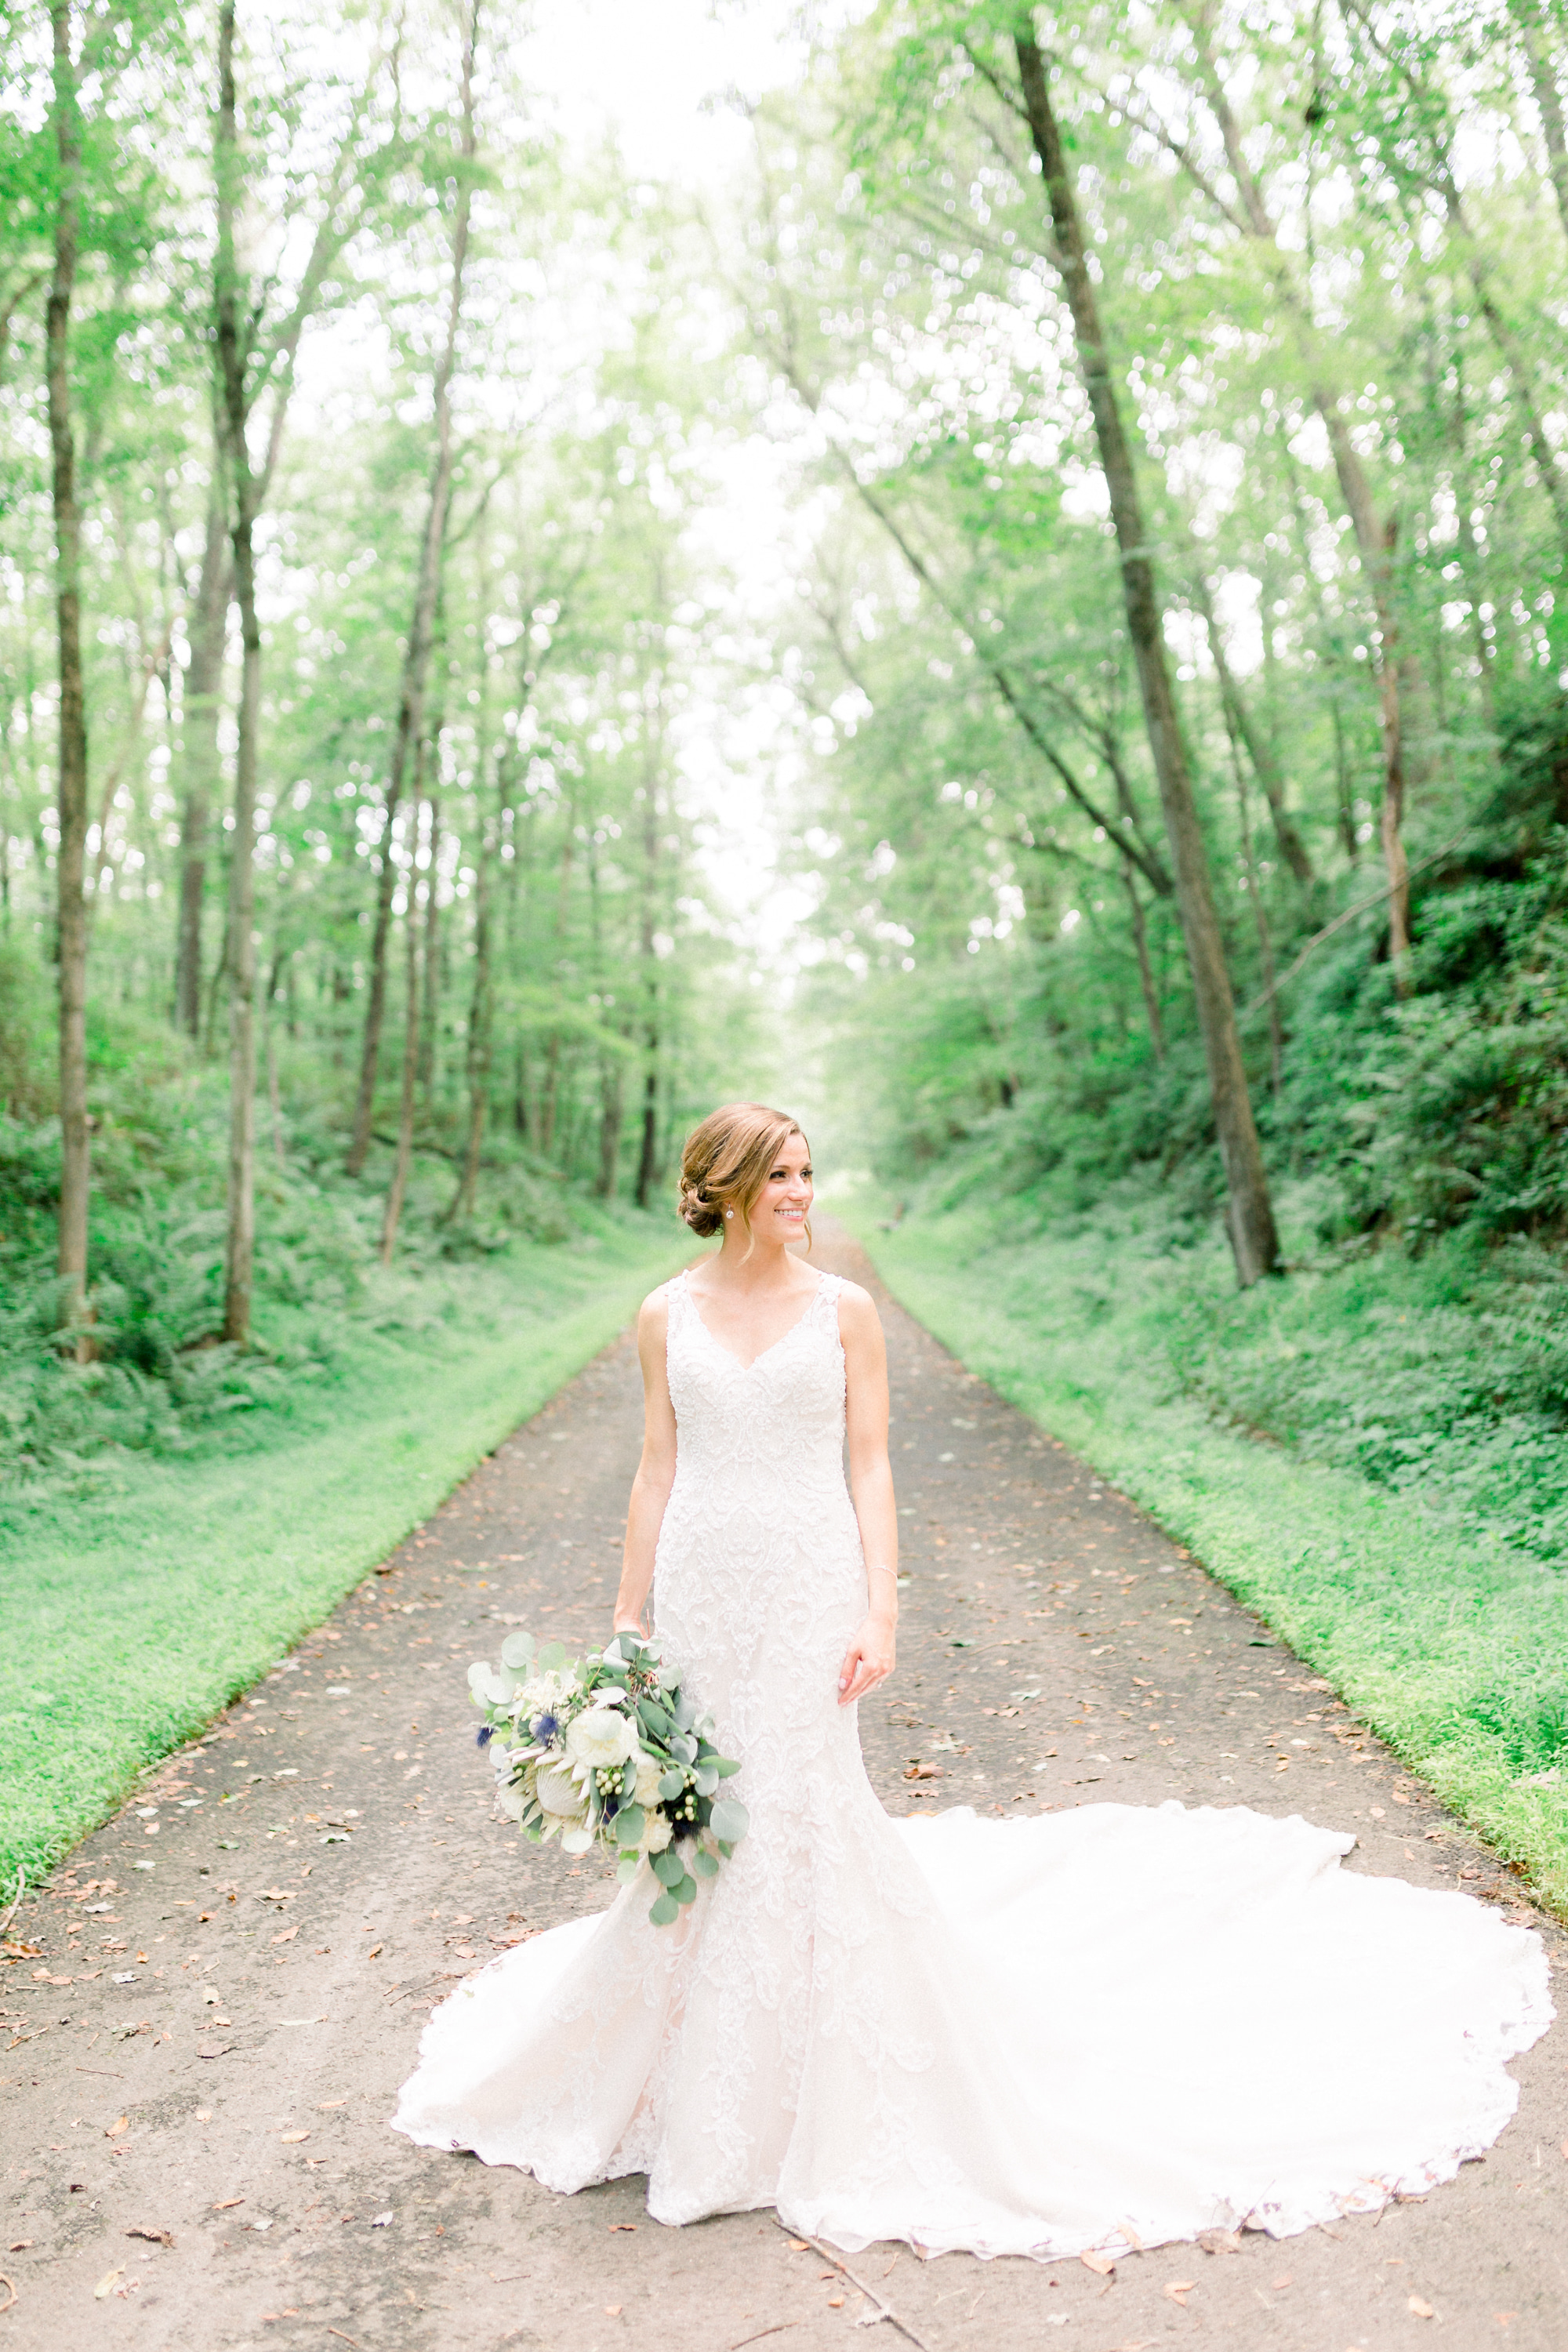 Bride in Justin Alexander wedding dress for Pittsburgh wedding planned by Exhale Events. Find more wedding inspiration at exhale-events.com!